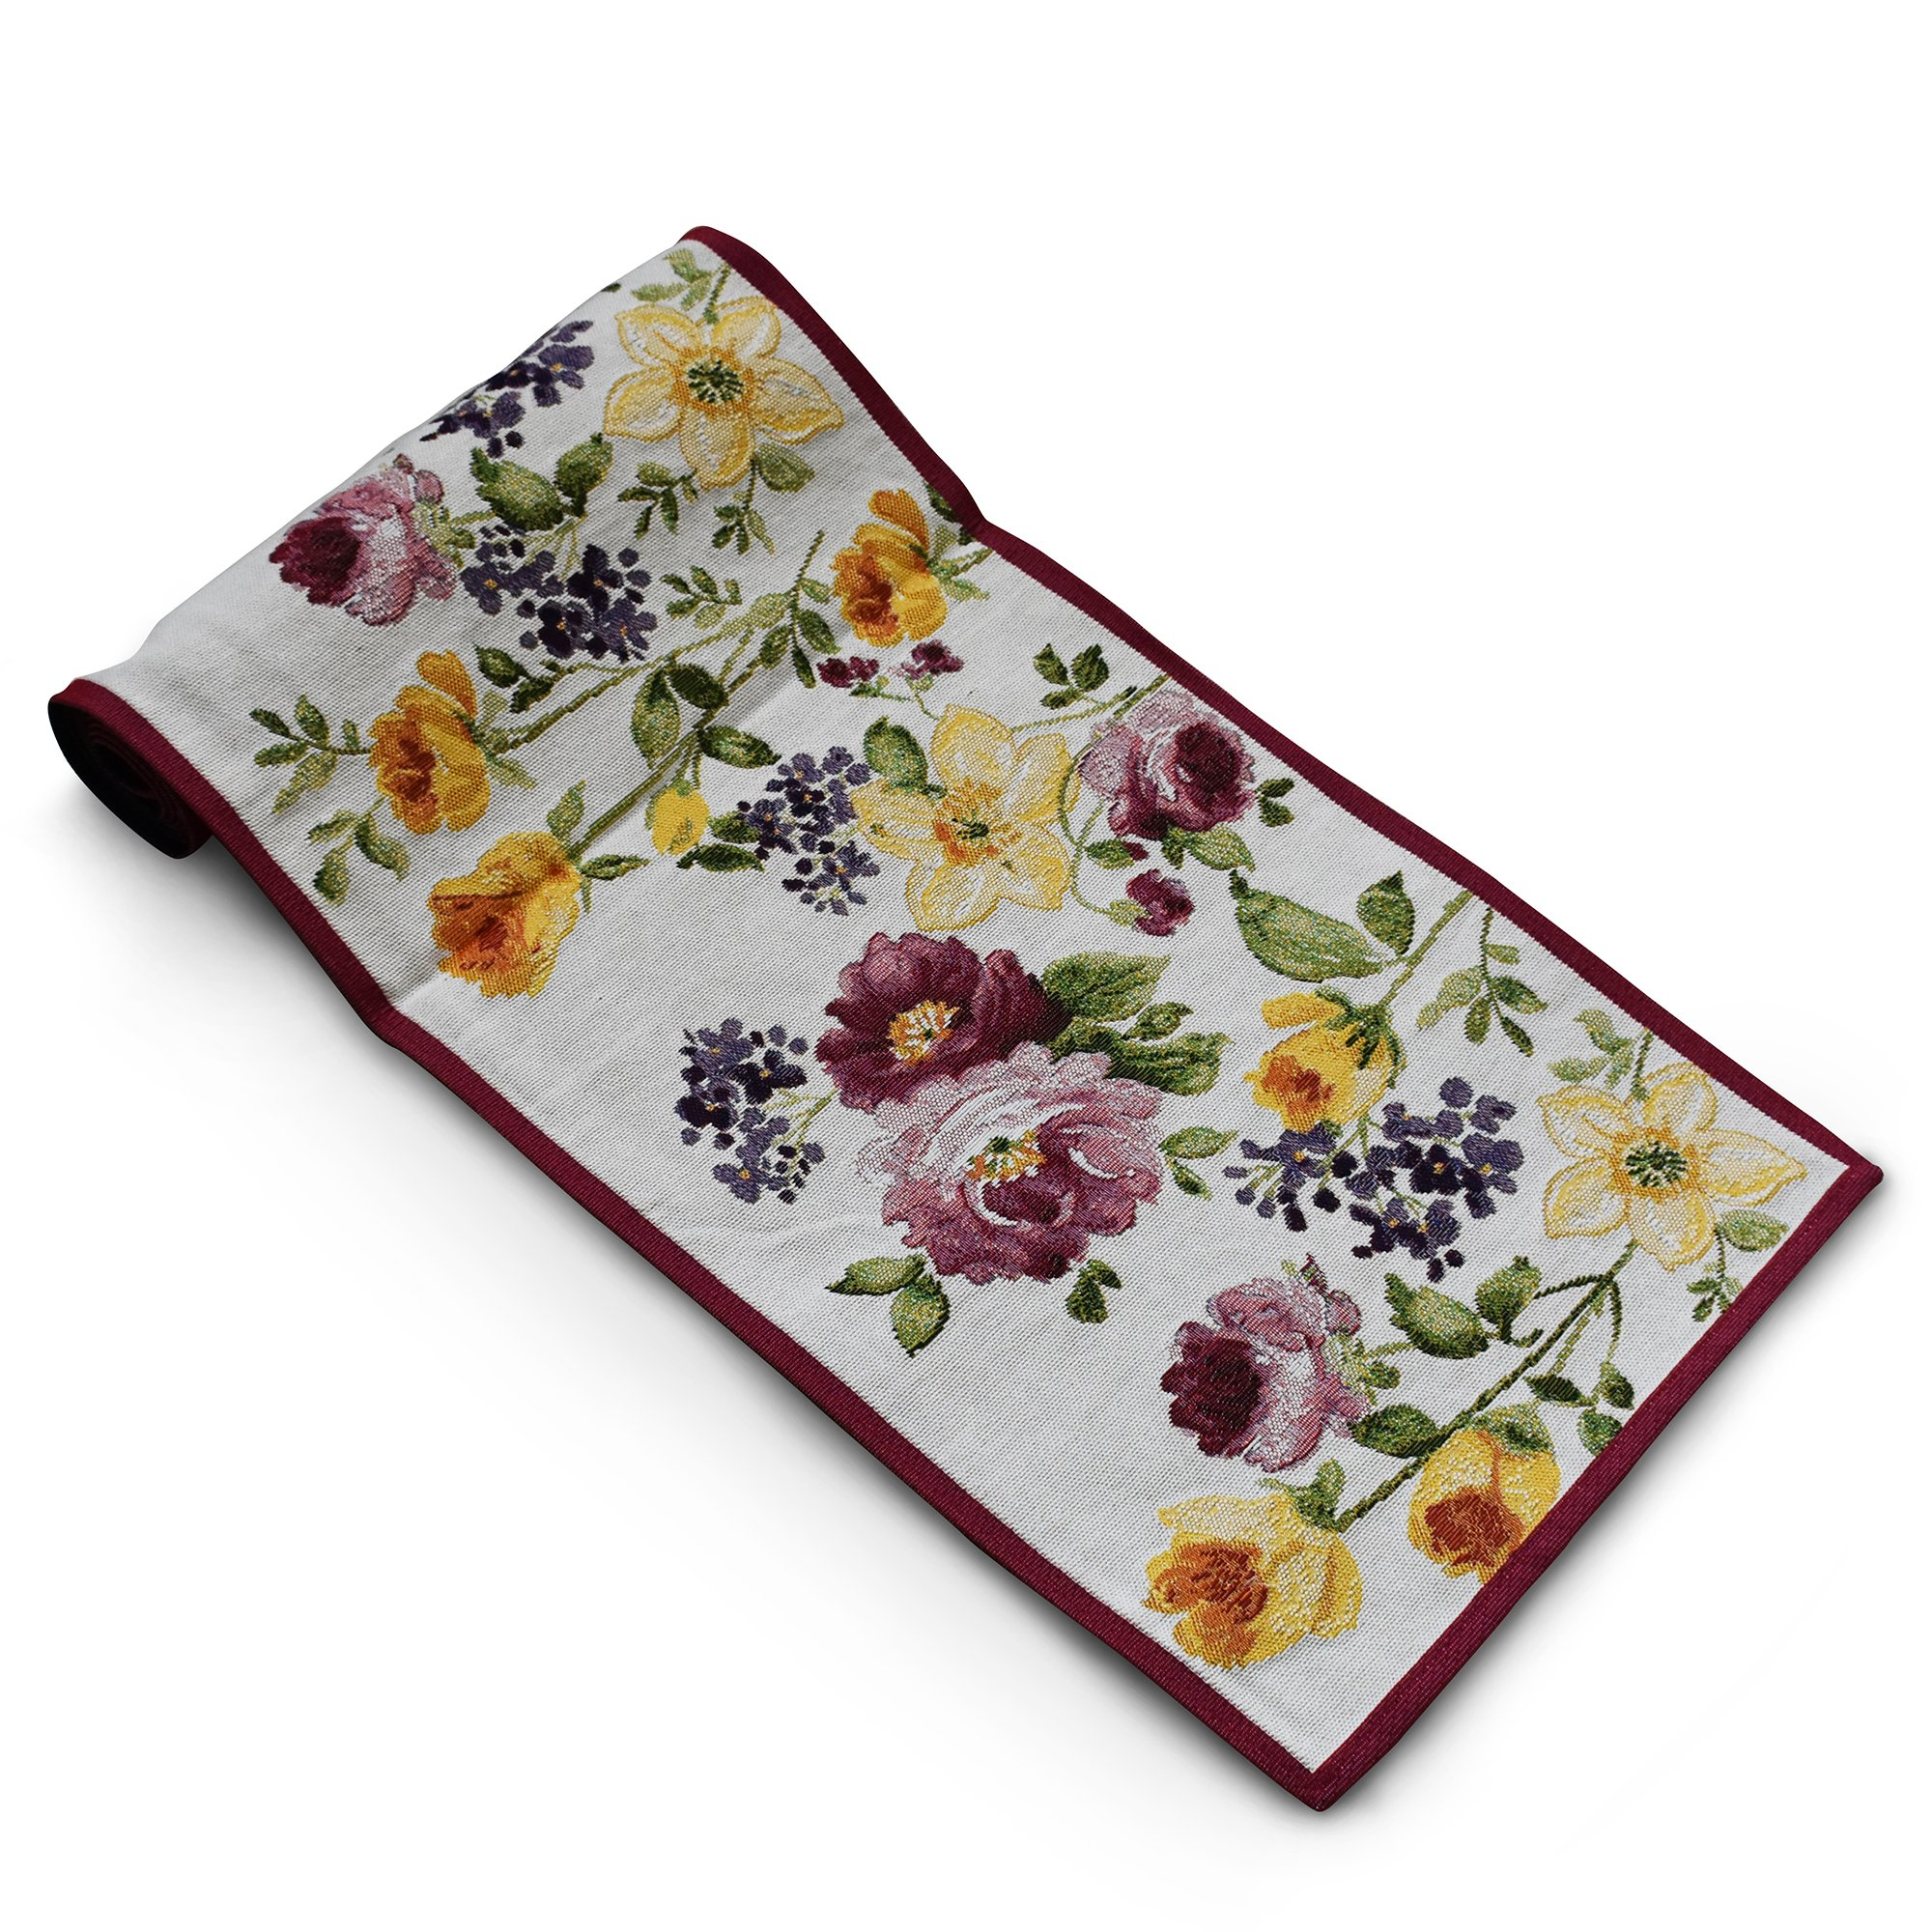 """Homvare Machine Washable, Everyday Tapestry Kitchen Table Runner for Dinner Parties, Events, Decor 13""""x72"""" Rose Garden"""